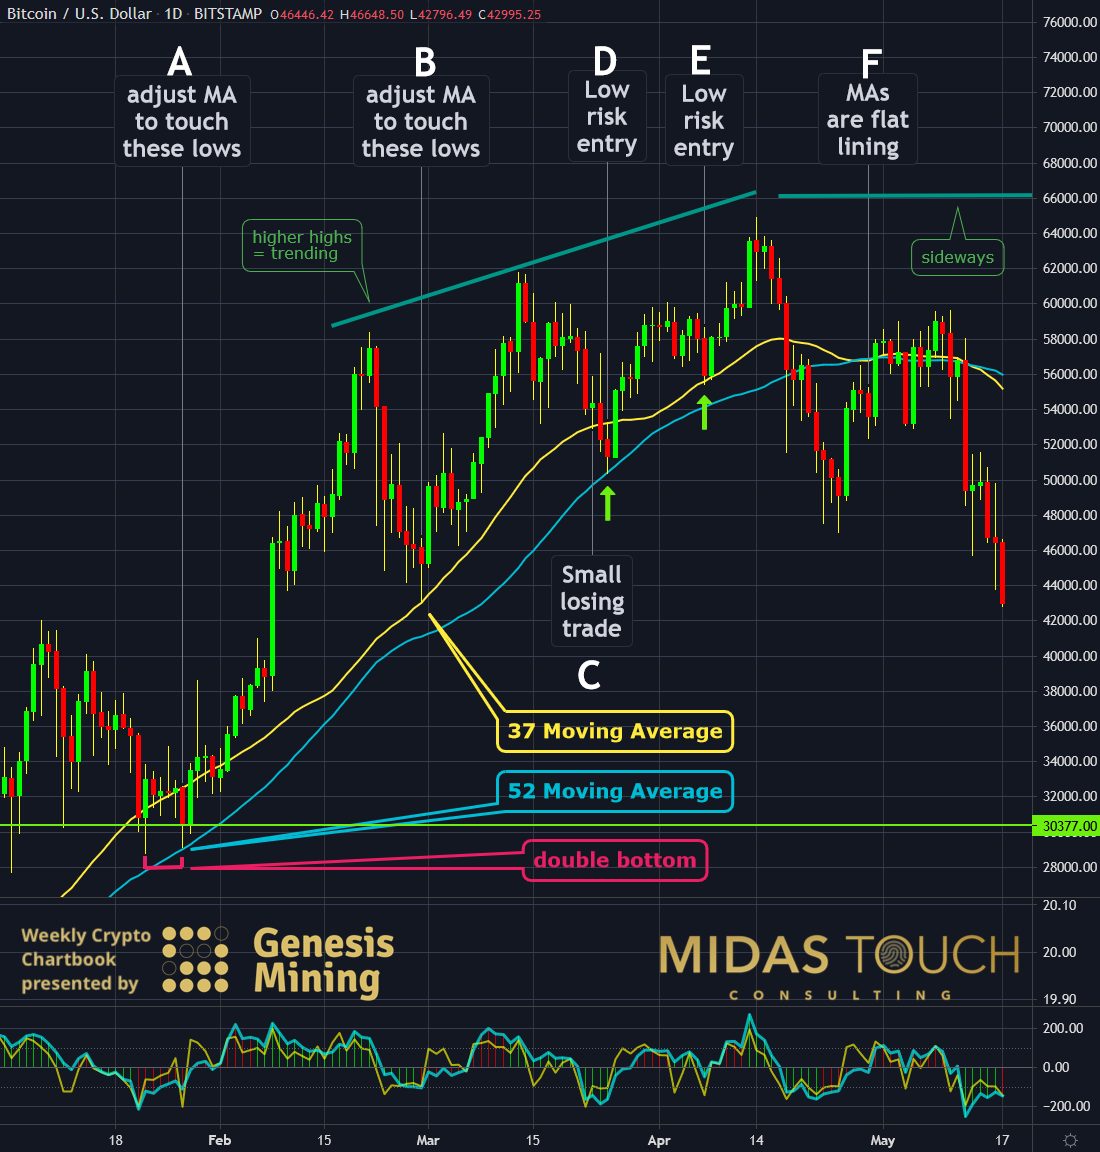 Bitcoin in US-Dollar, daily chart as of May 17th, 2021.